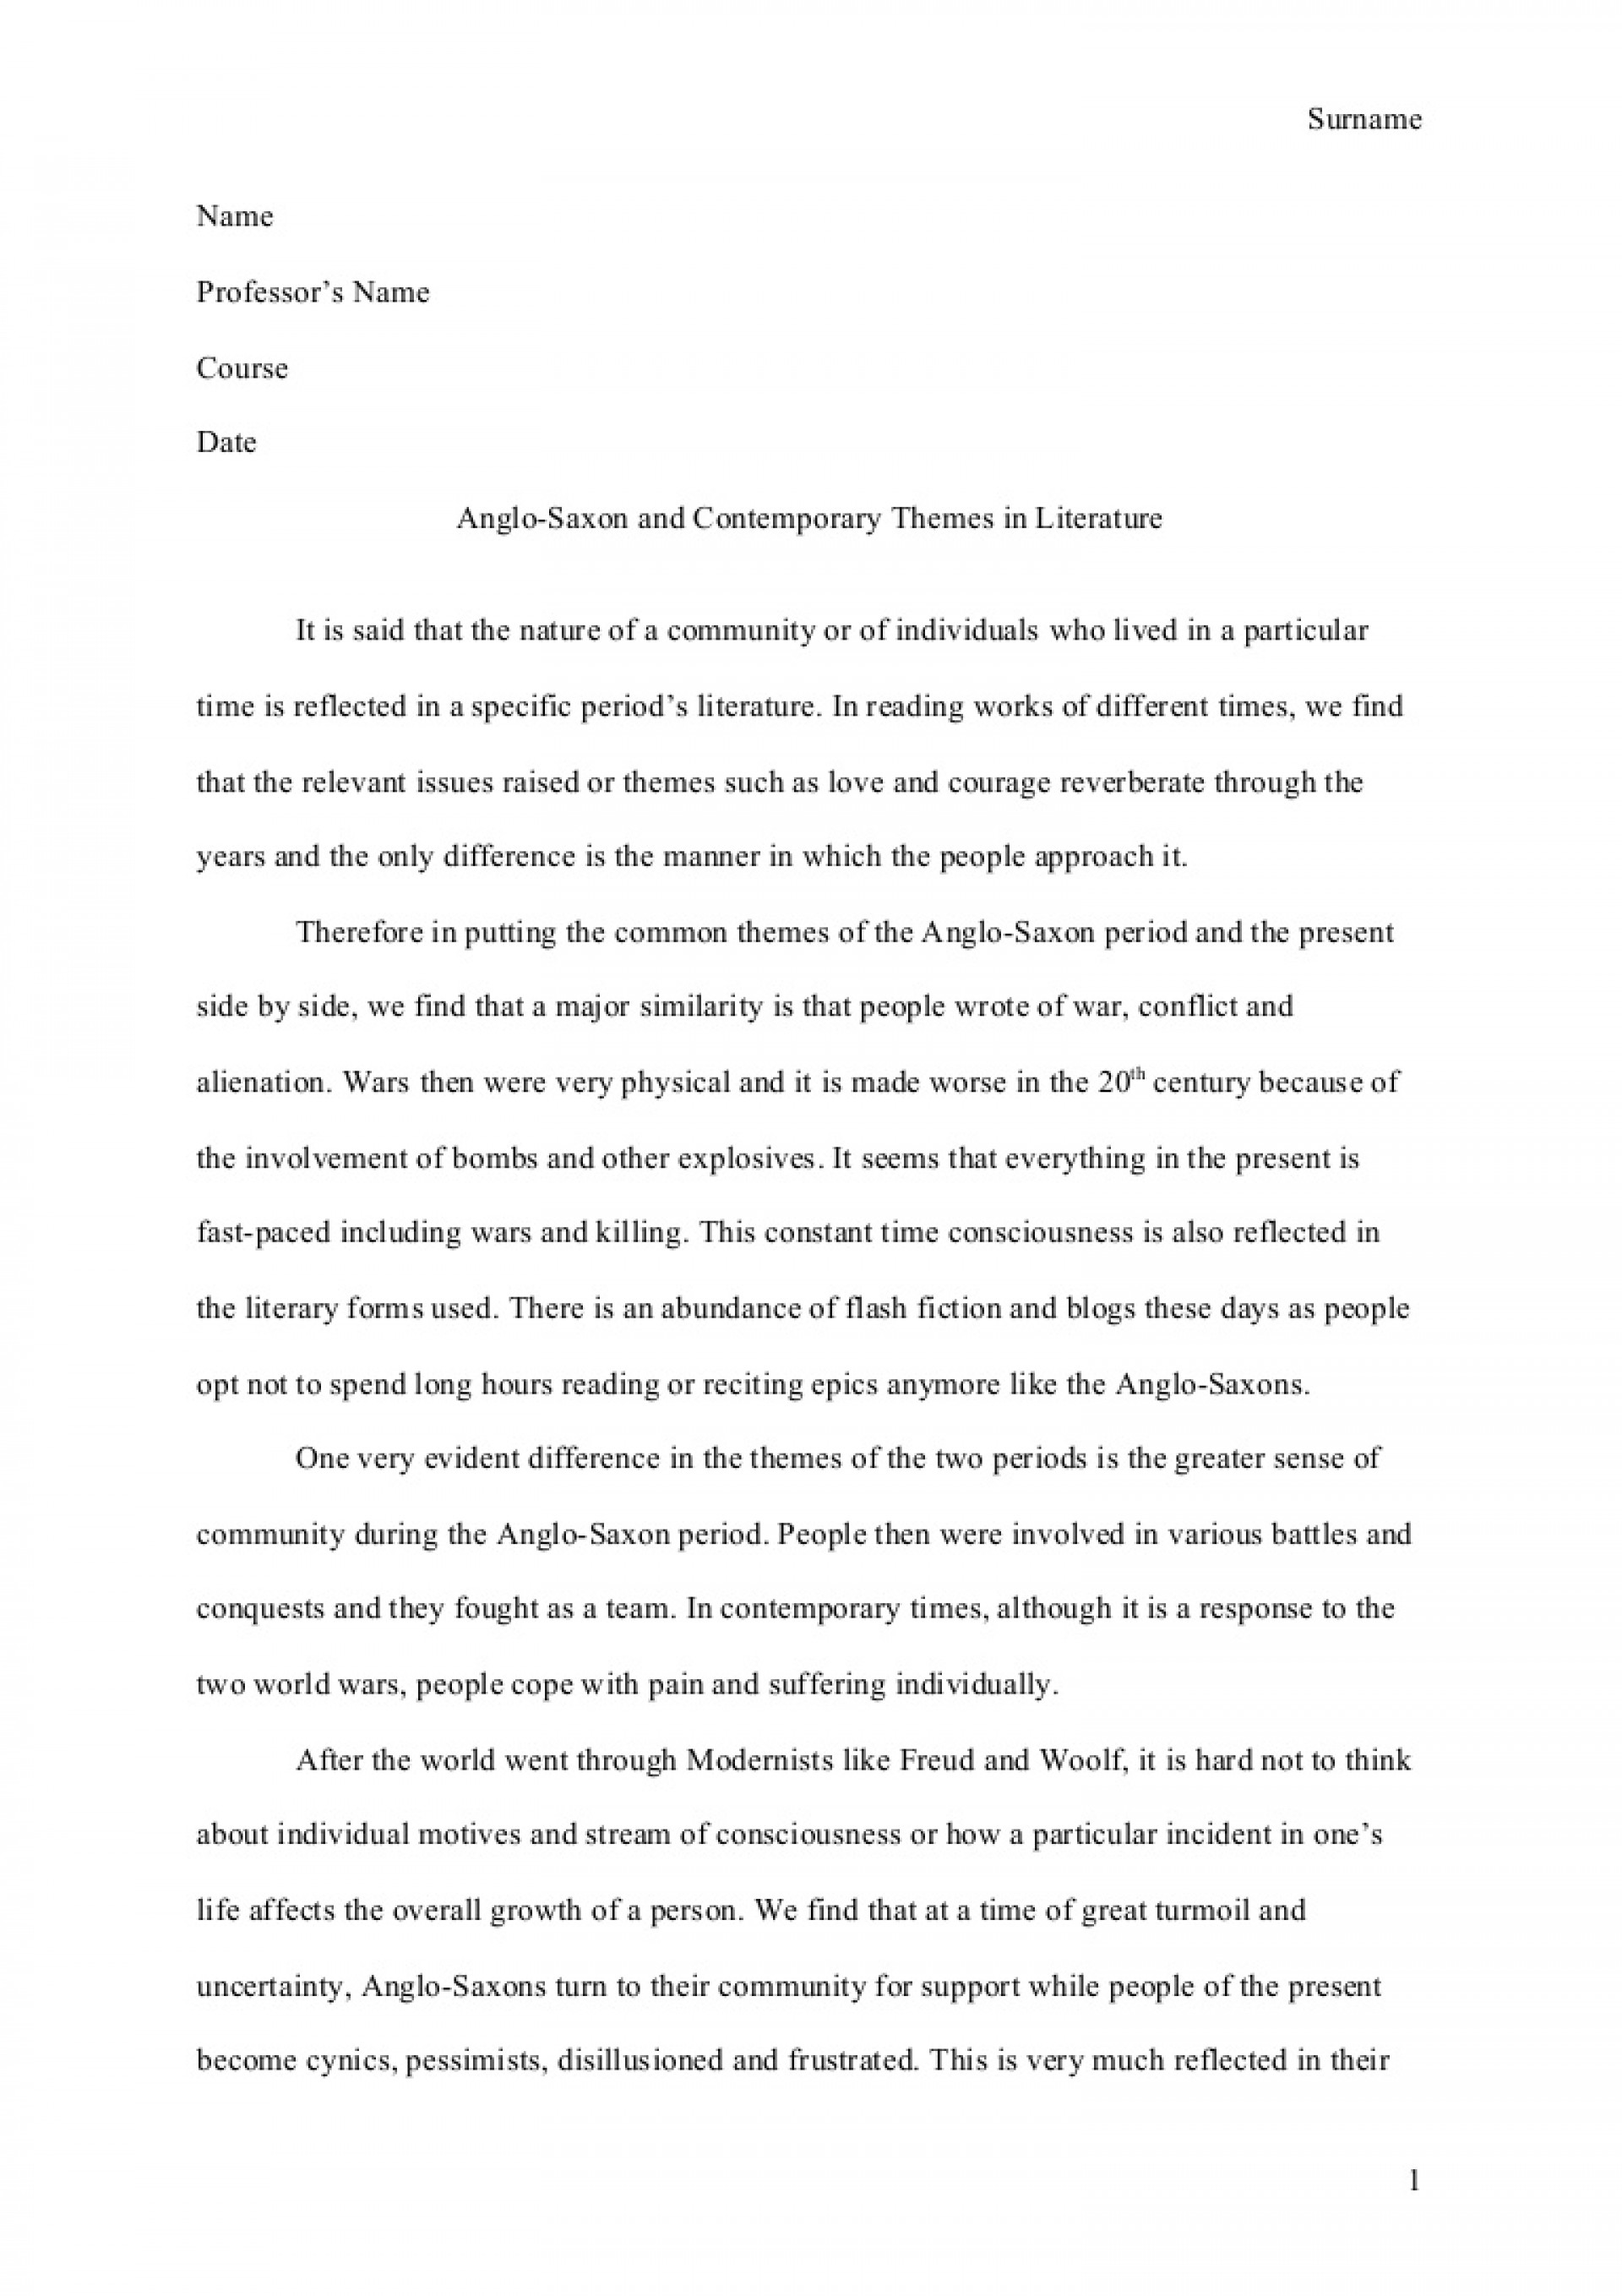 017 Format Of An Essay Example Perfectessay Netapasample2 Phpapp02 Thumbnail Awful Outline Apa Academic Conclusion Style 1920